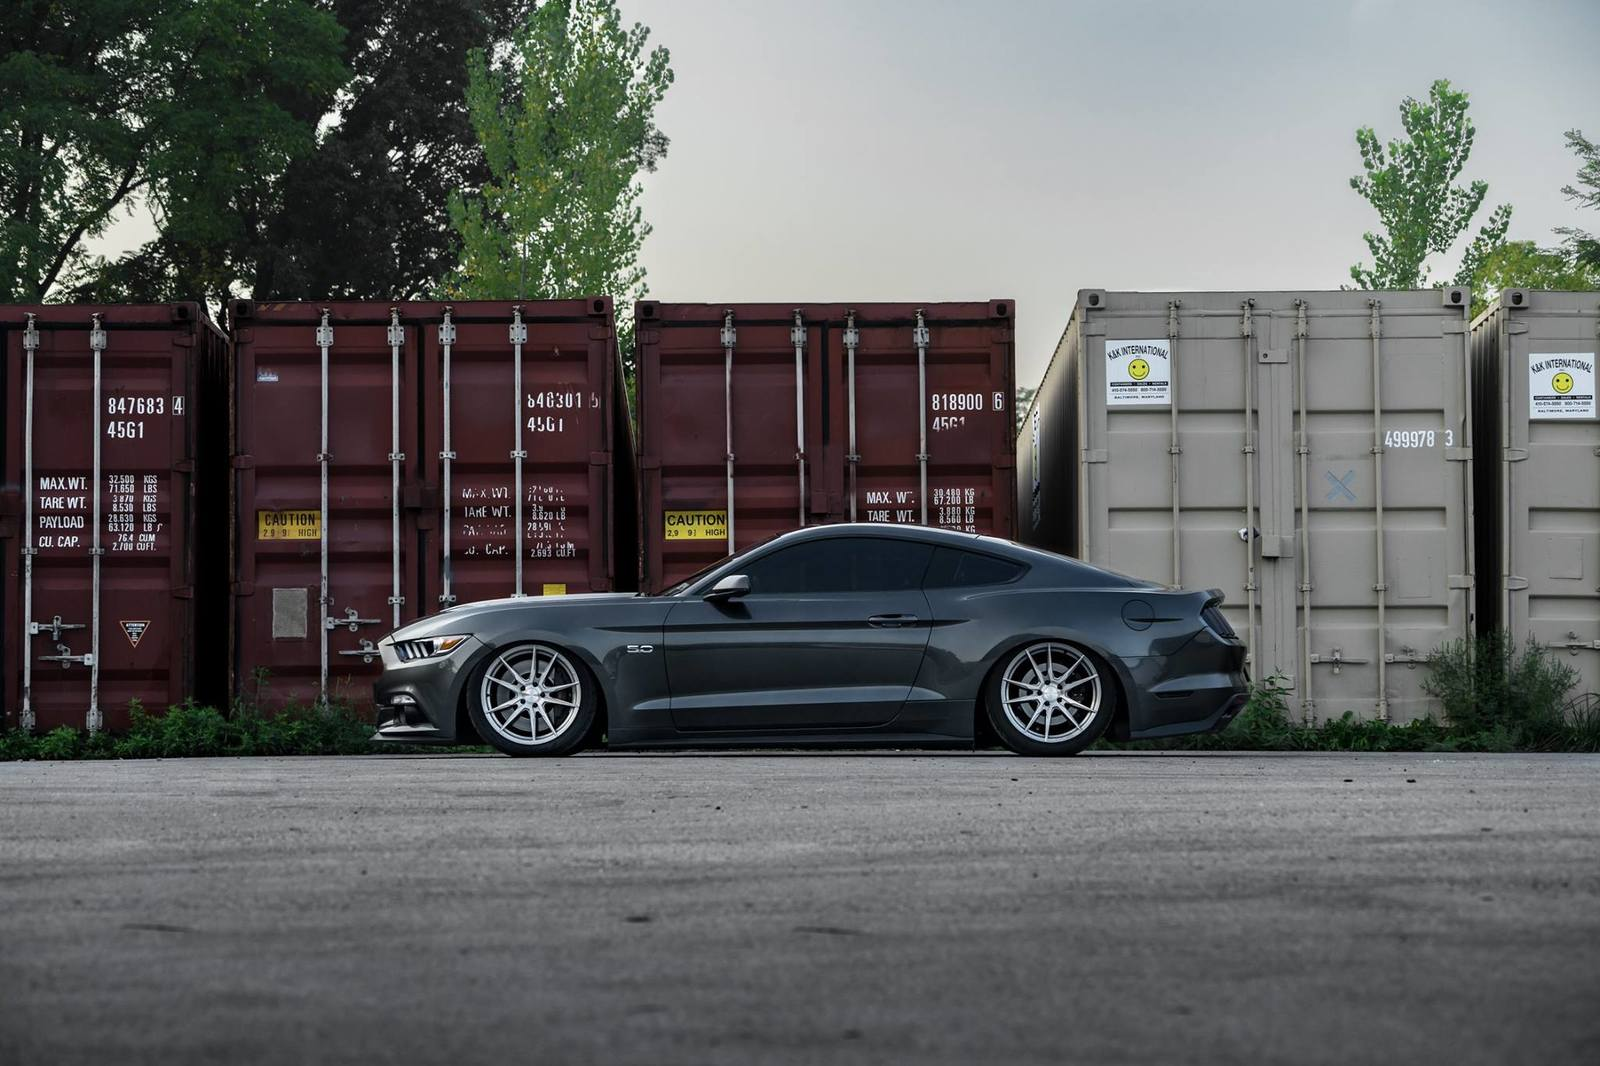 magnetic-ford-mustang-gtpp-s550-rohaan-rf2-brushed-titanium-rotory-forged-concave-wheels.jpg